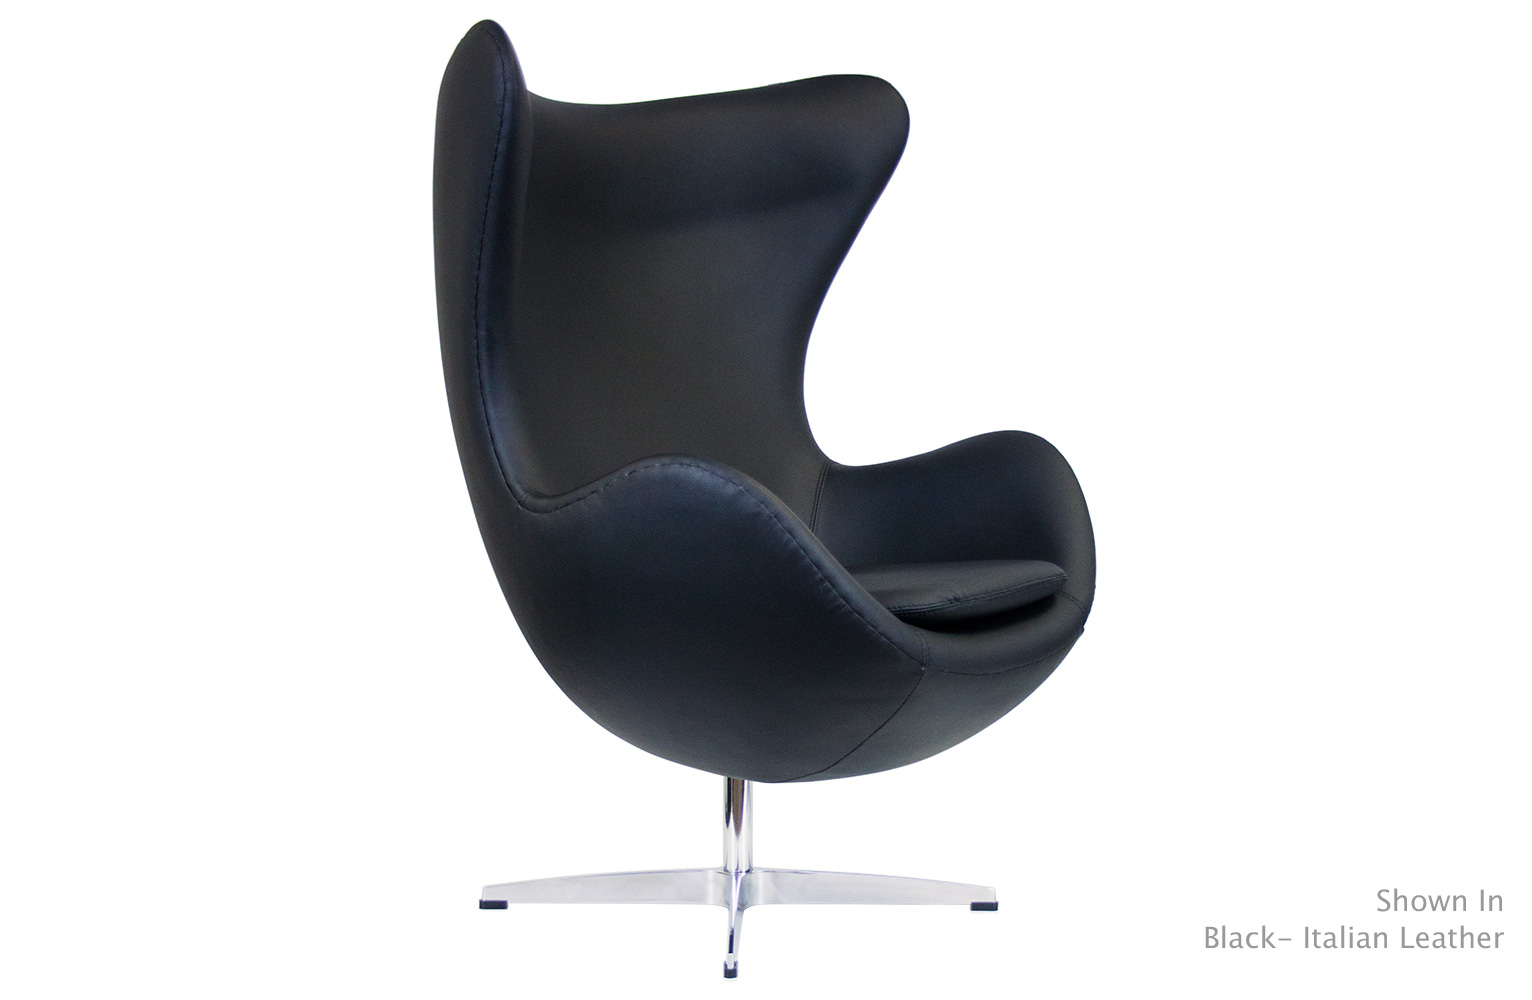 Egg Chair Designer Egg Chair Reproduction : eggchairinblackleather from www.serenitylivingstores.com size 1532 x 1000 jpeg 129kB